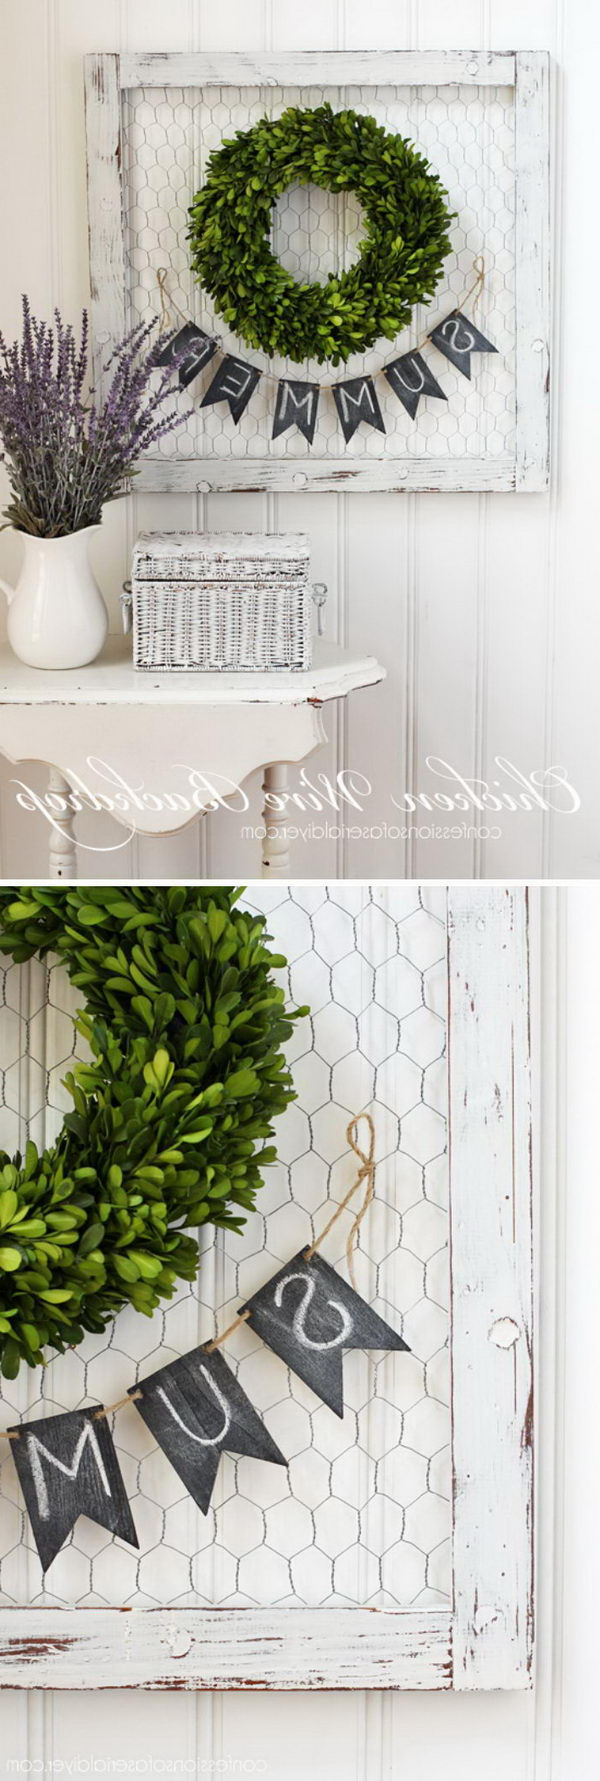 Most Recent Ceramic Rustic Wall Décor For 40 Rustic Wall Decor Diy Ideas (View 16 of 20)